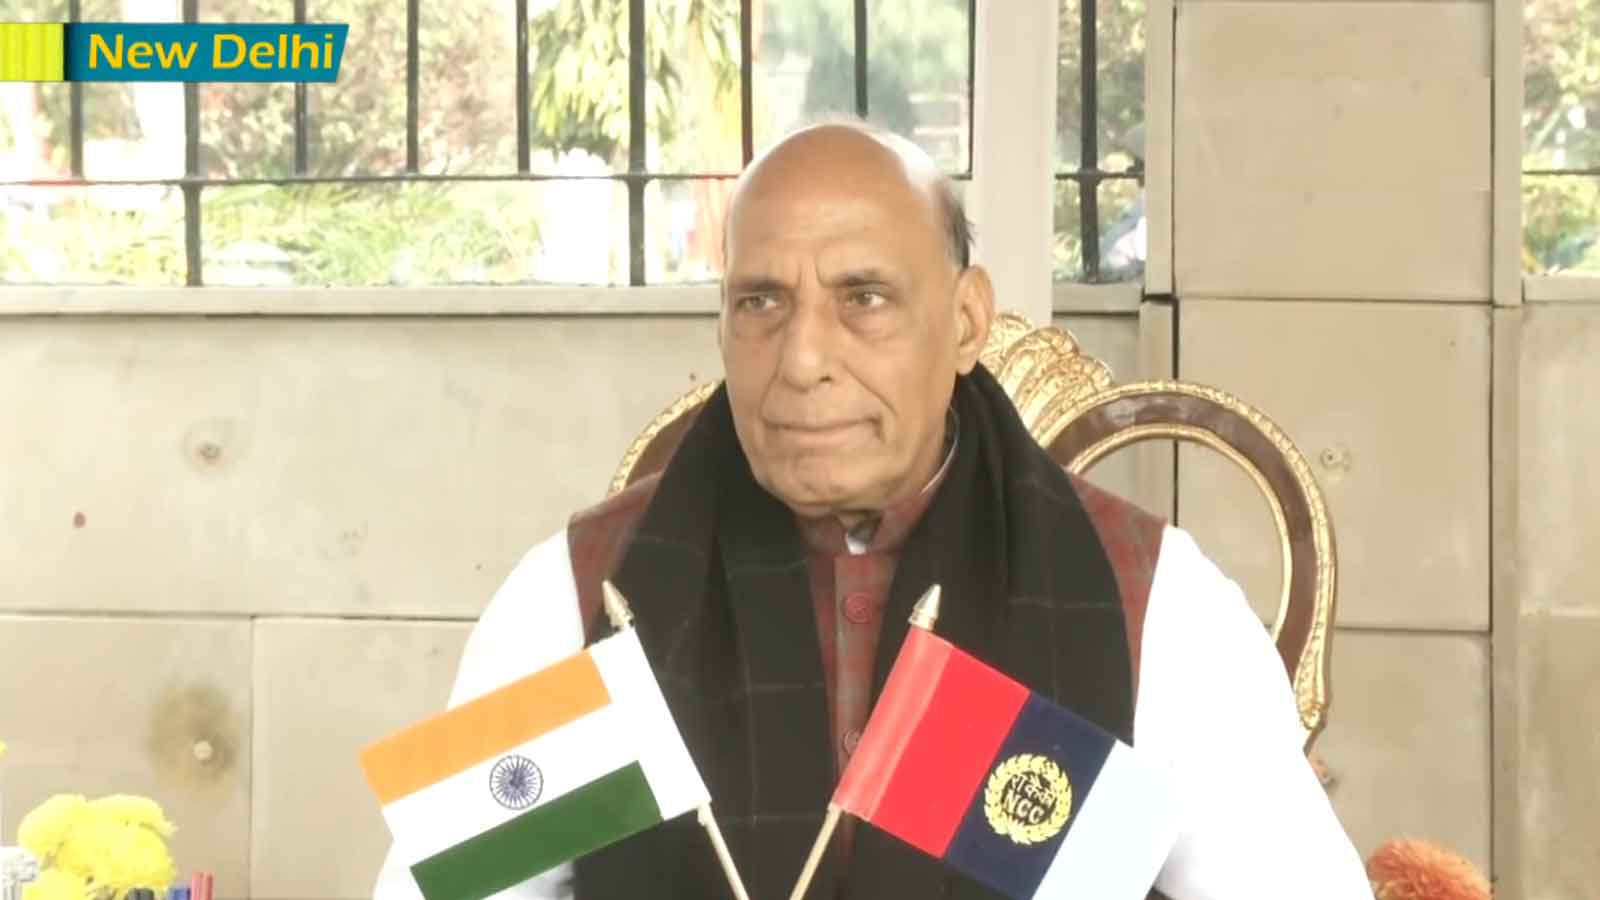 no-country-has-courage-to-raise-their-eyes-towards-india-rajnath-singh